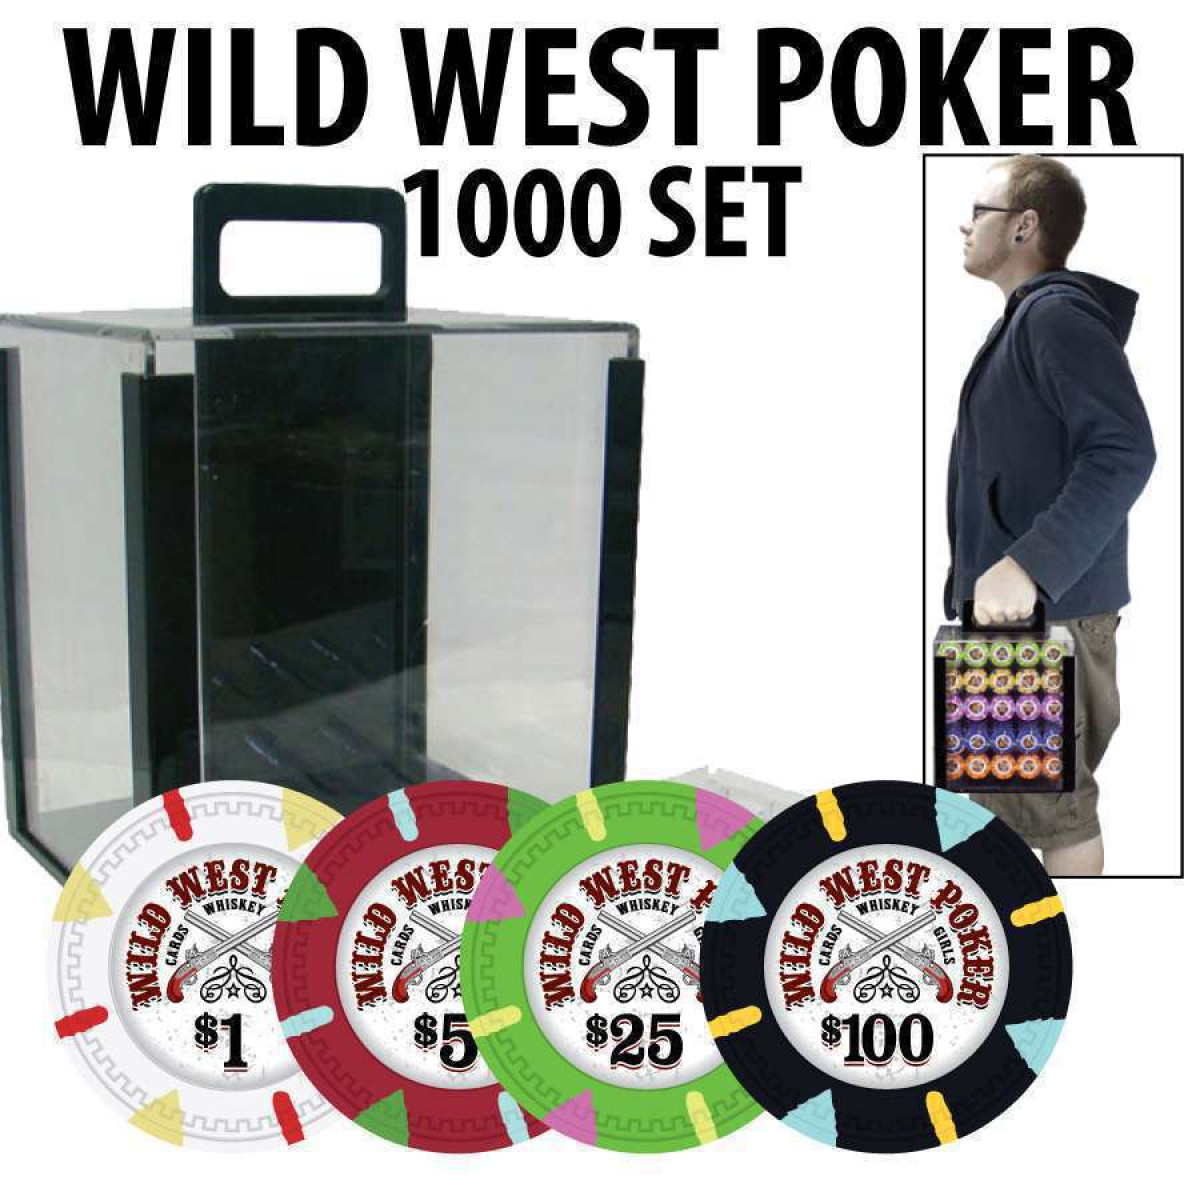 wild west poker chips w acrylic carrier and racks - Poker Chips Set